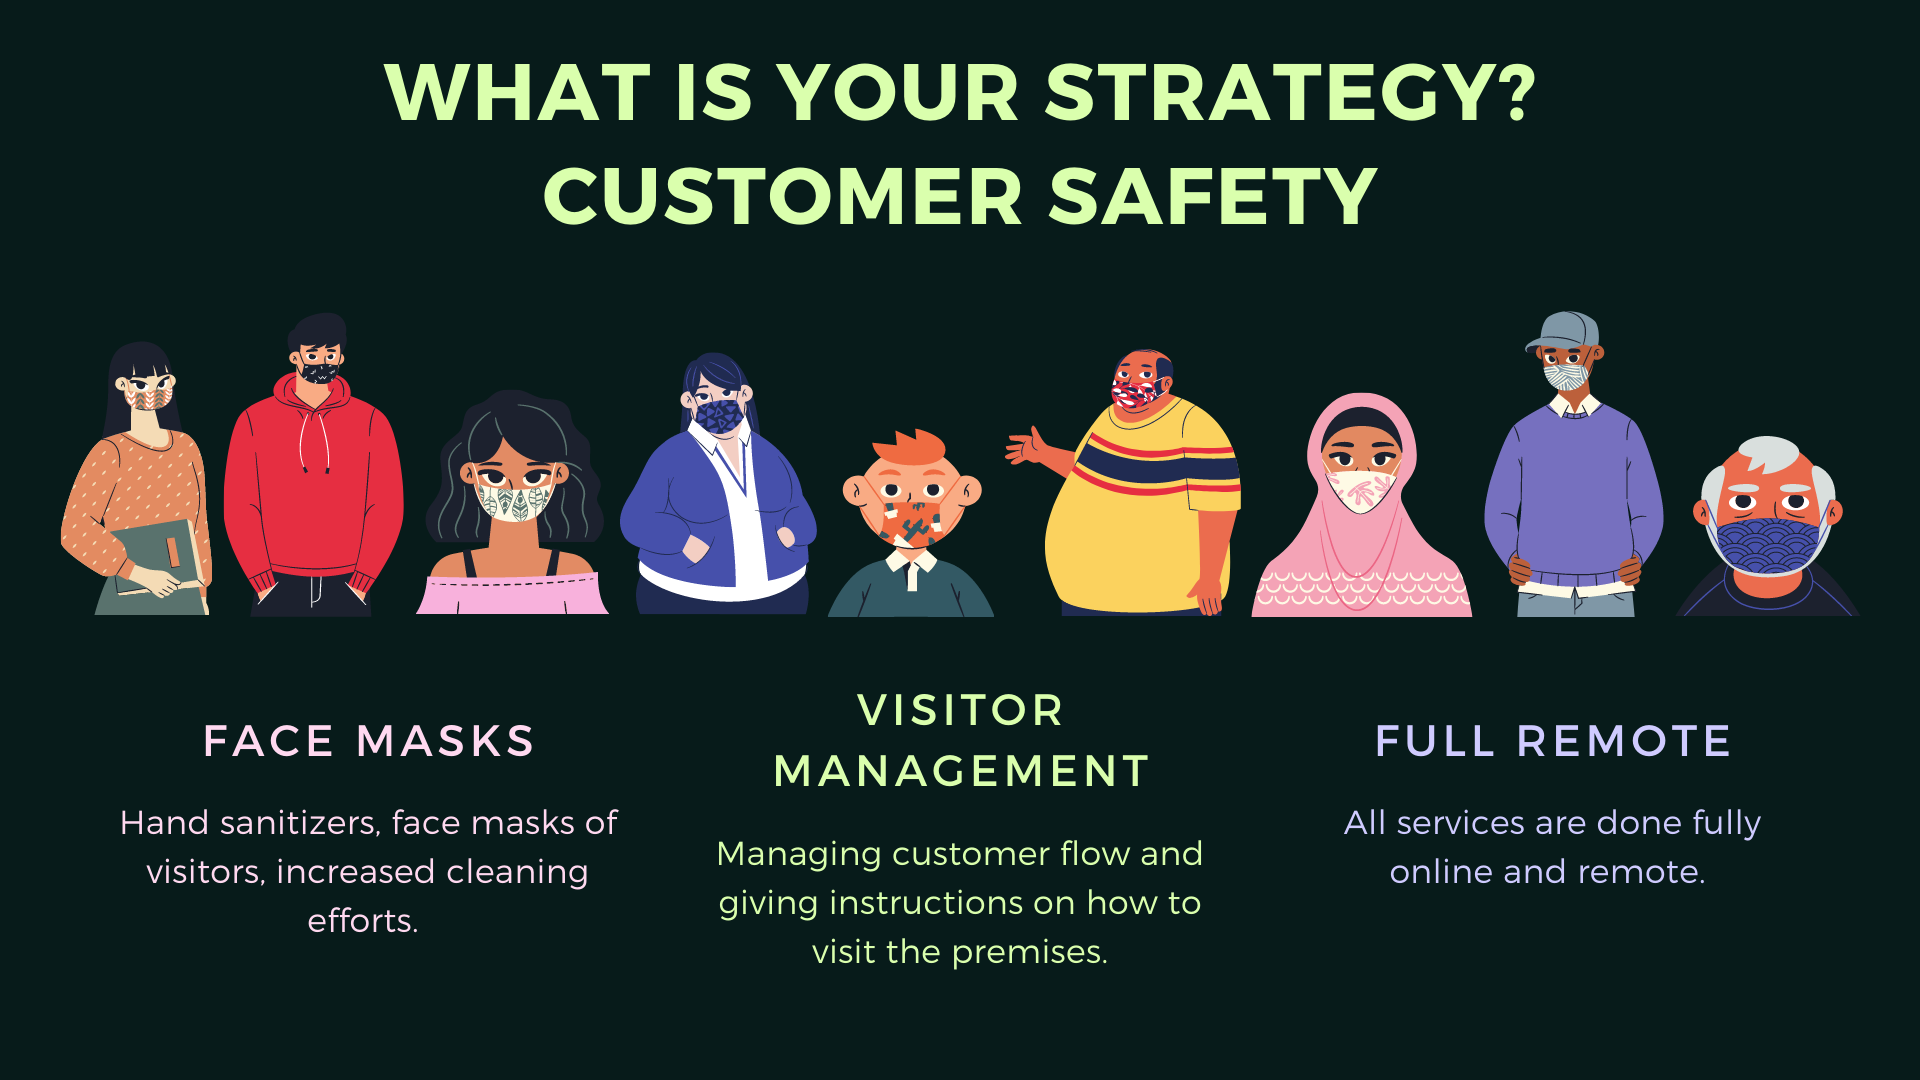 A picture which asks about the strategy related to customer safety post covid19